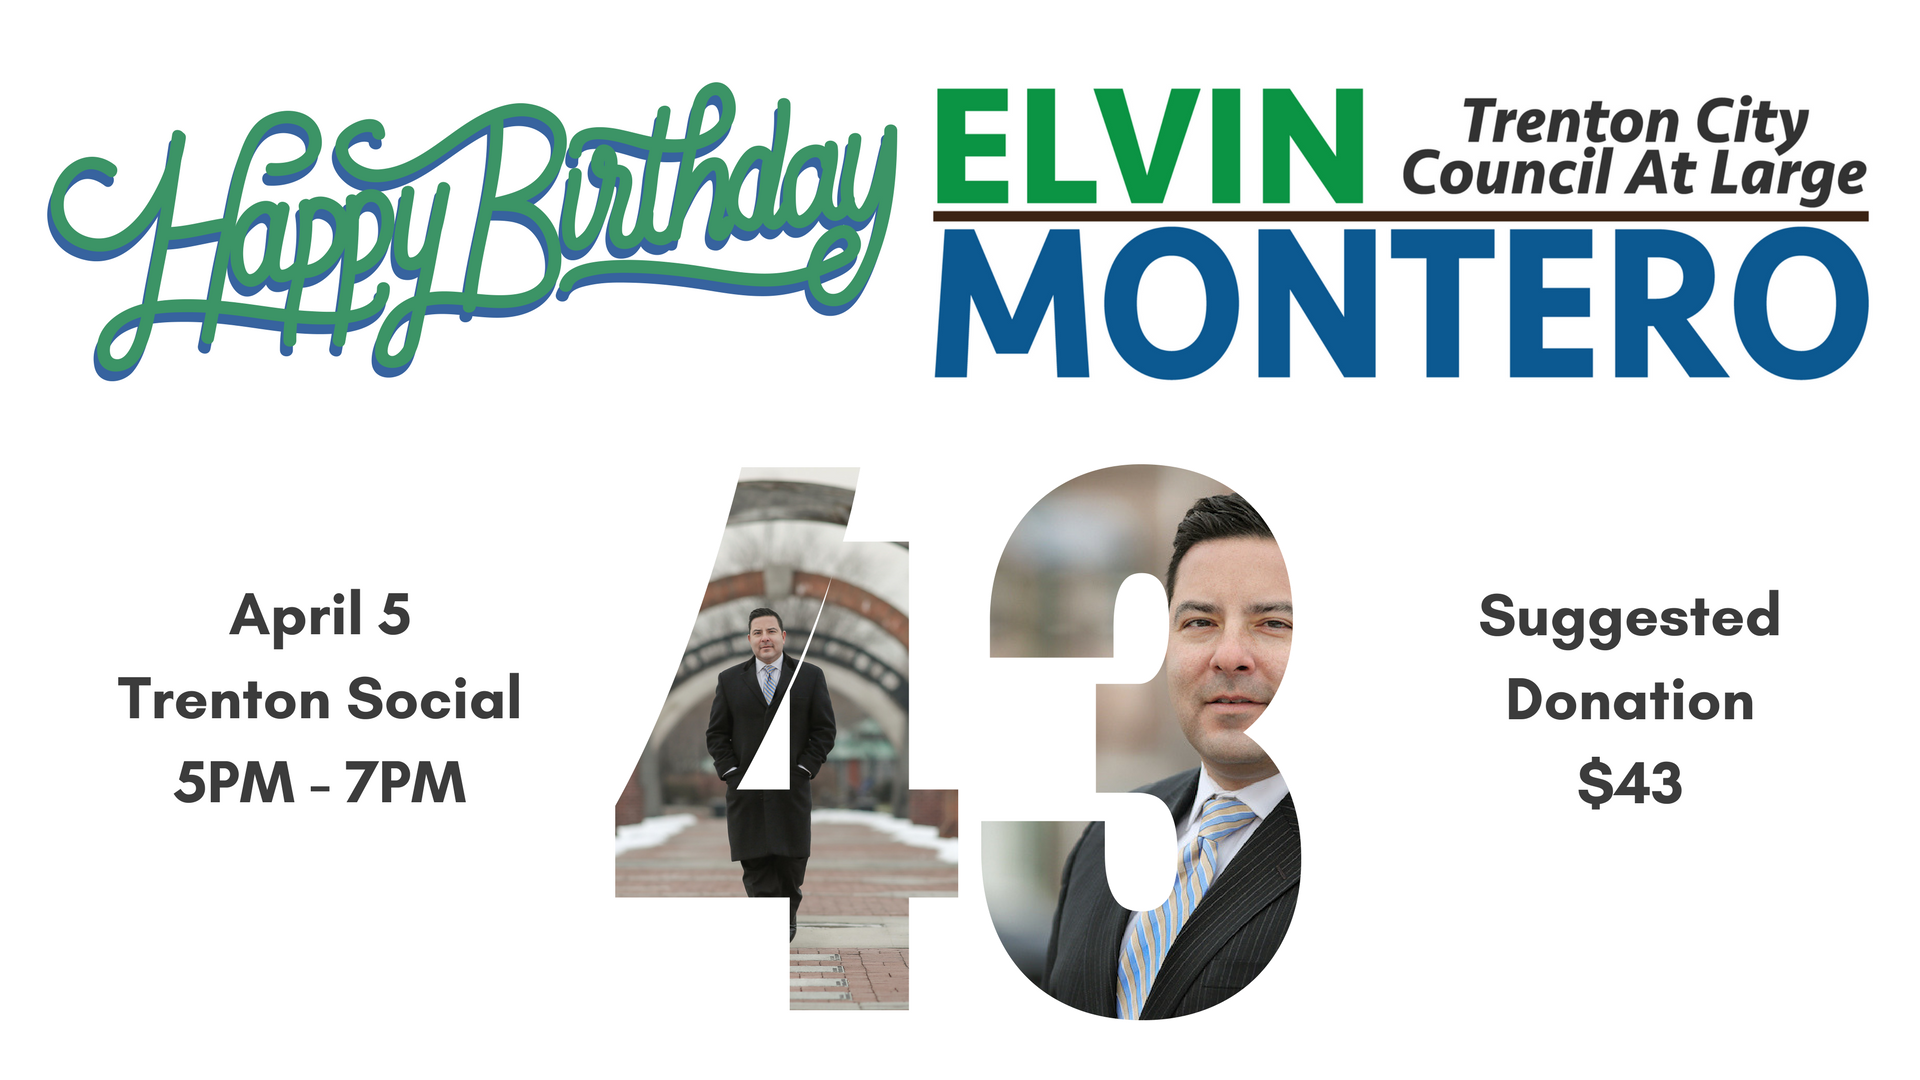 Elvin's_43rd_Birthday___33_Days_Before_Election_Day_Fundraiser-3.png